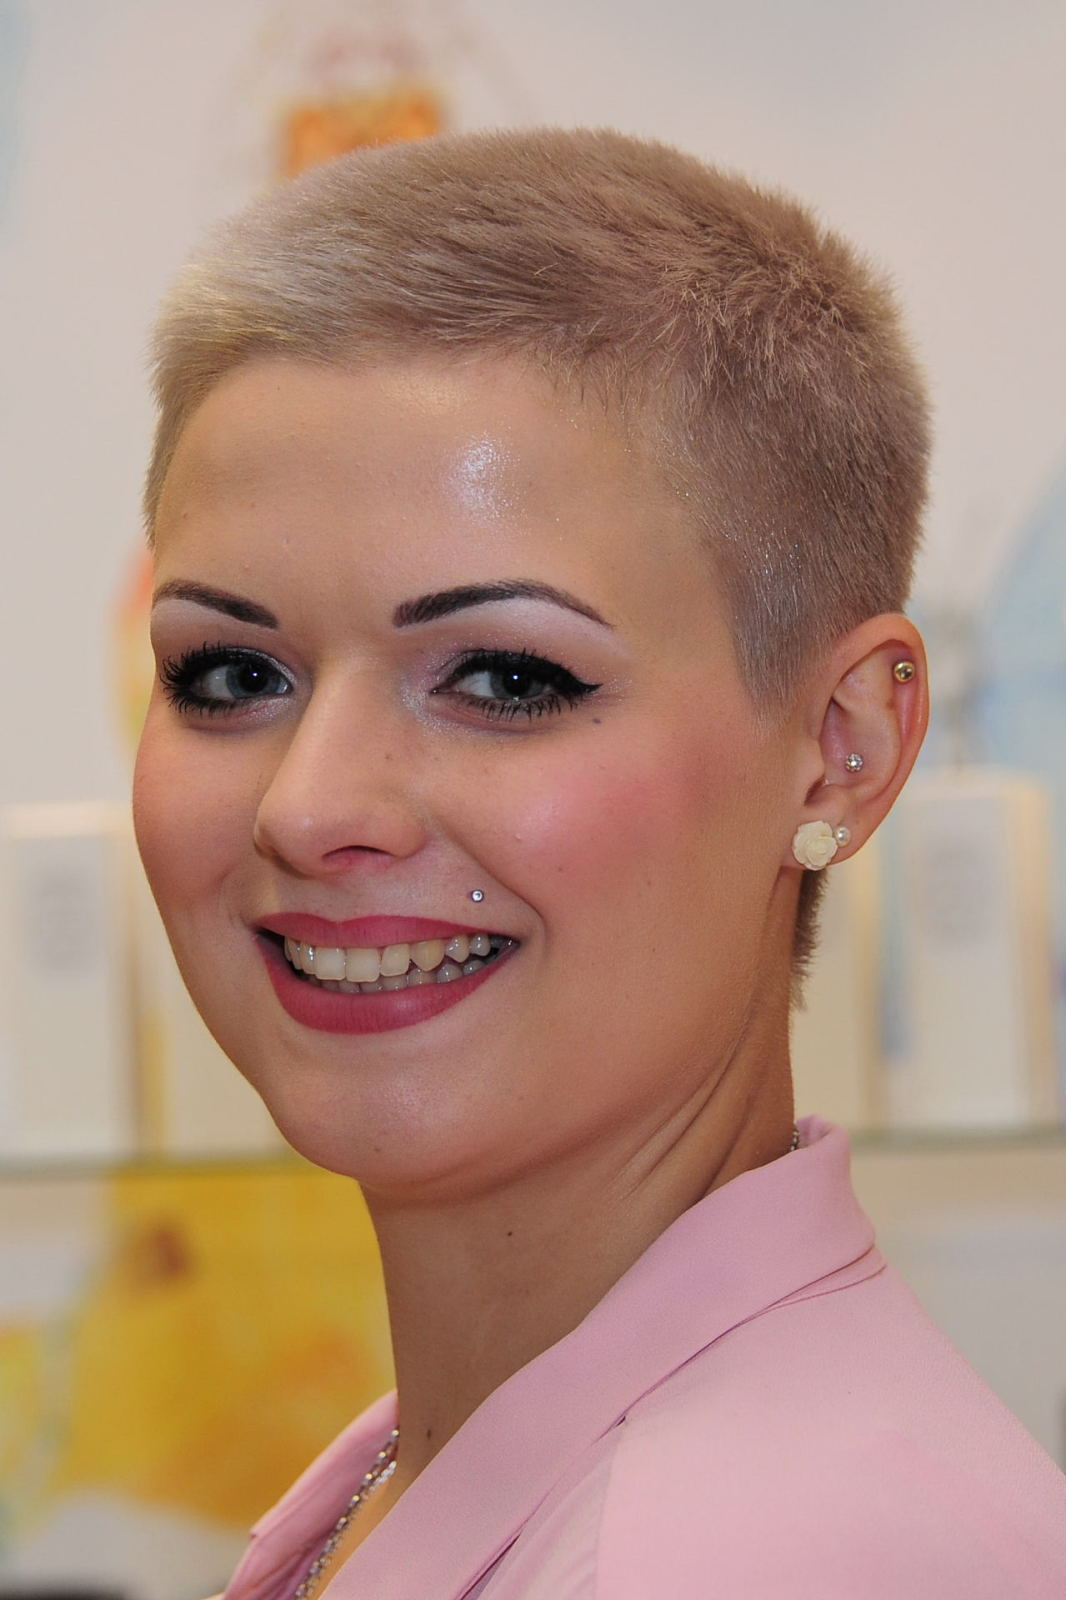 Women Extreme Short Pixie Hair